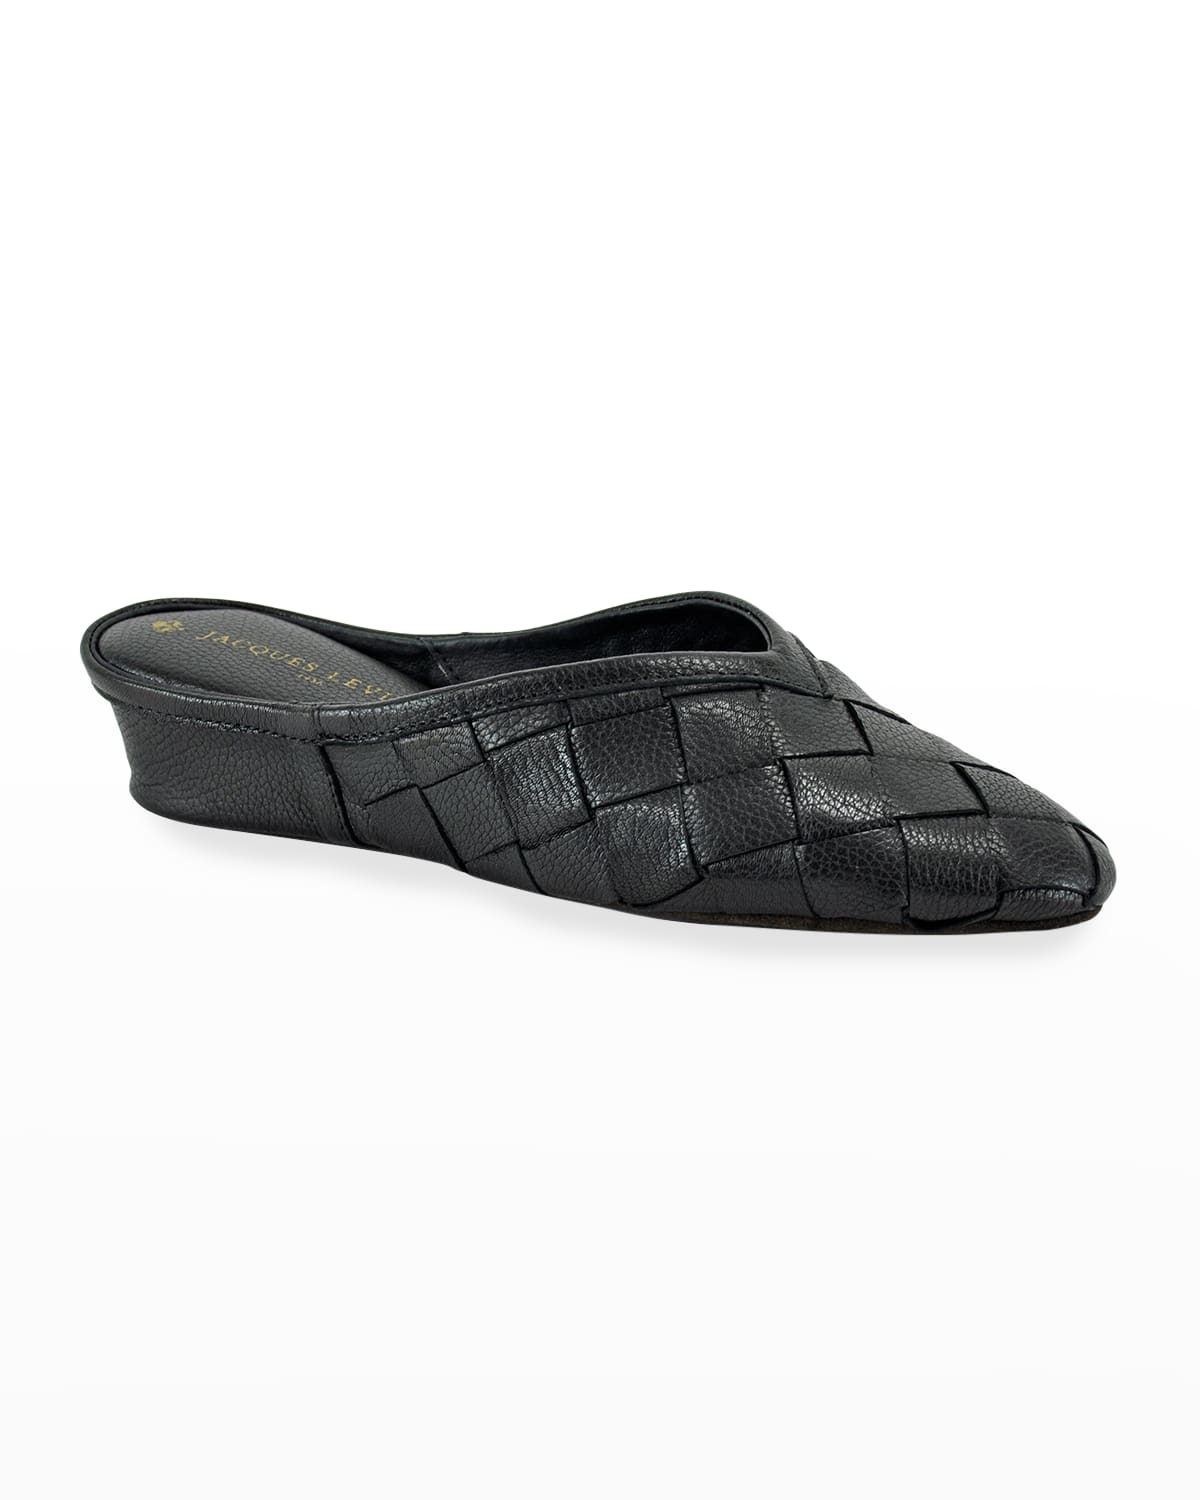 Woven Leather Wedge Slippers